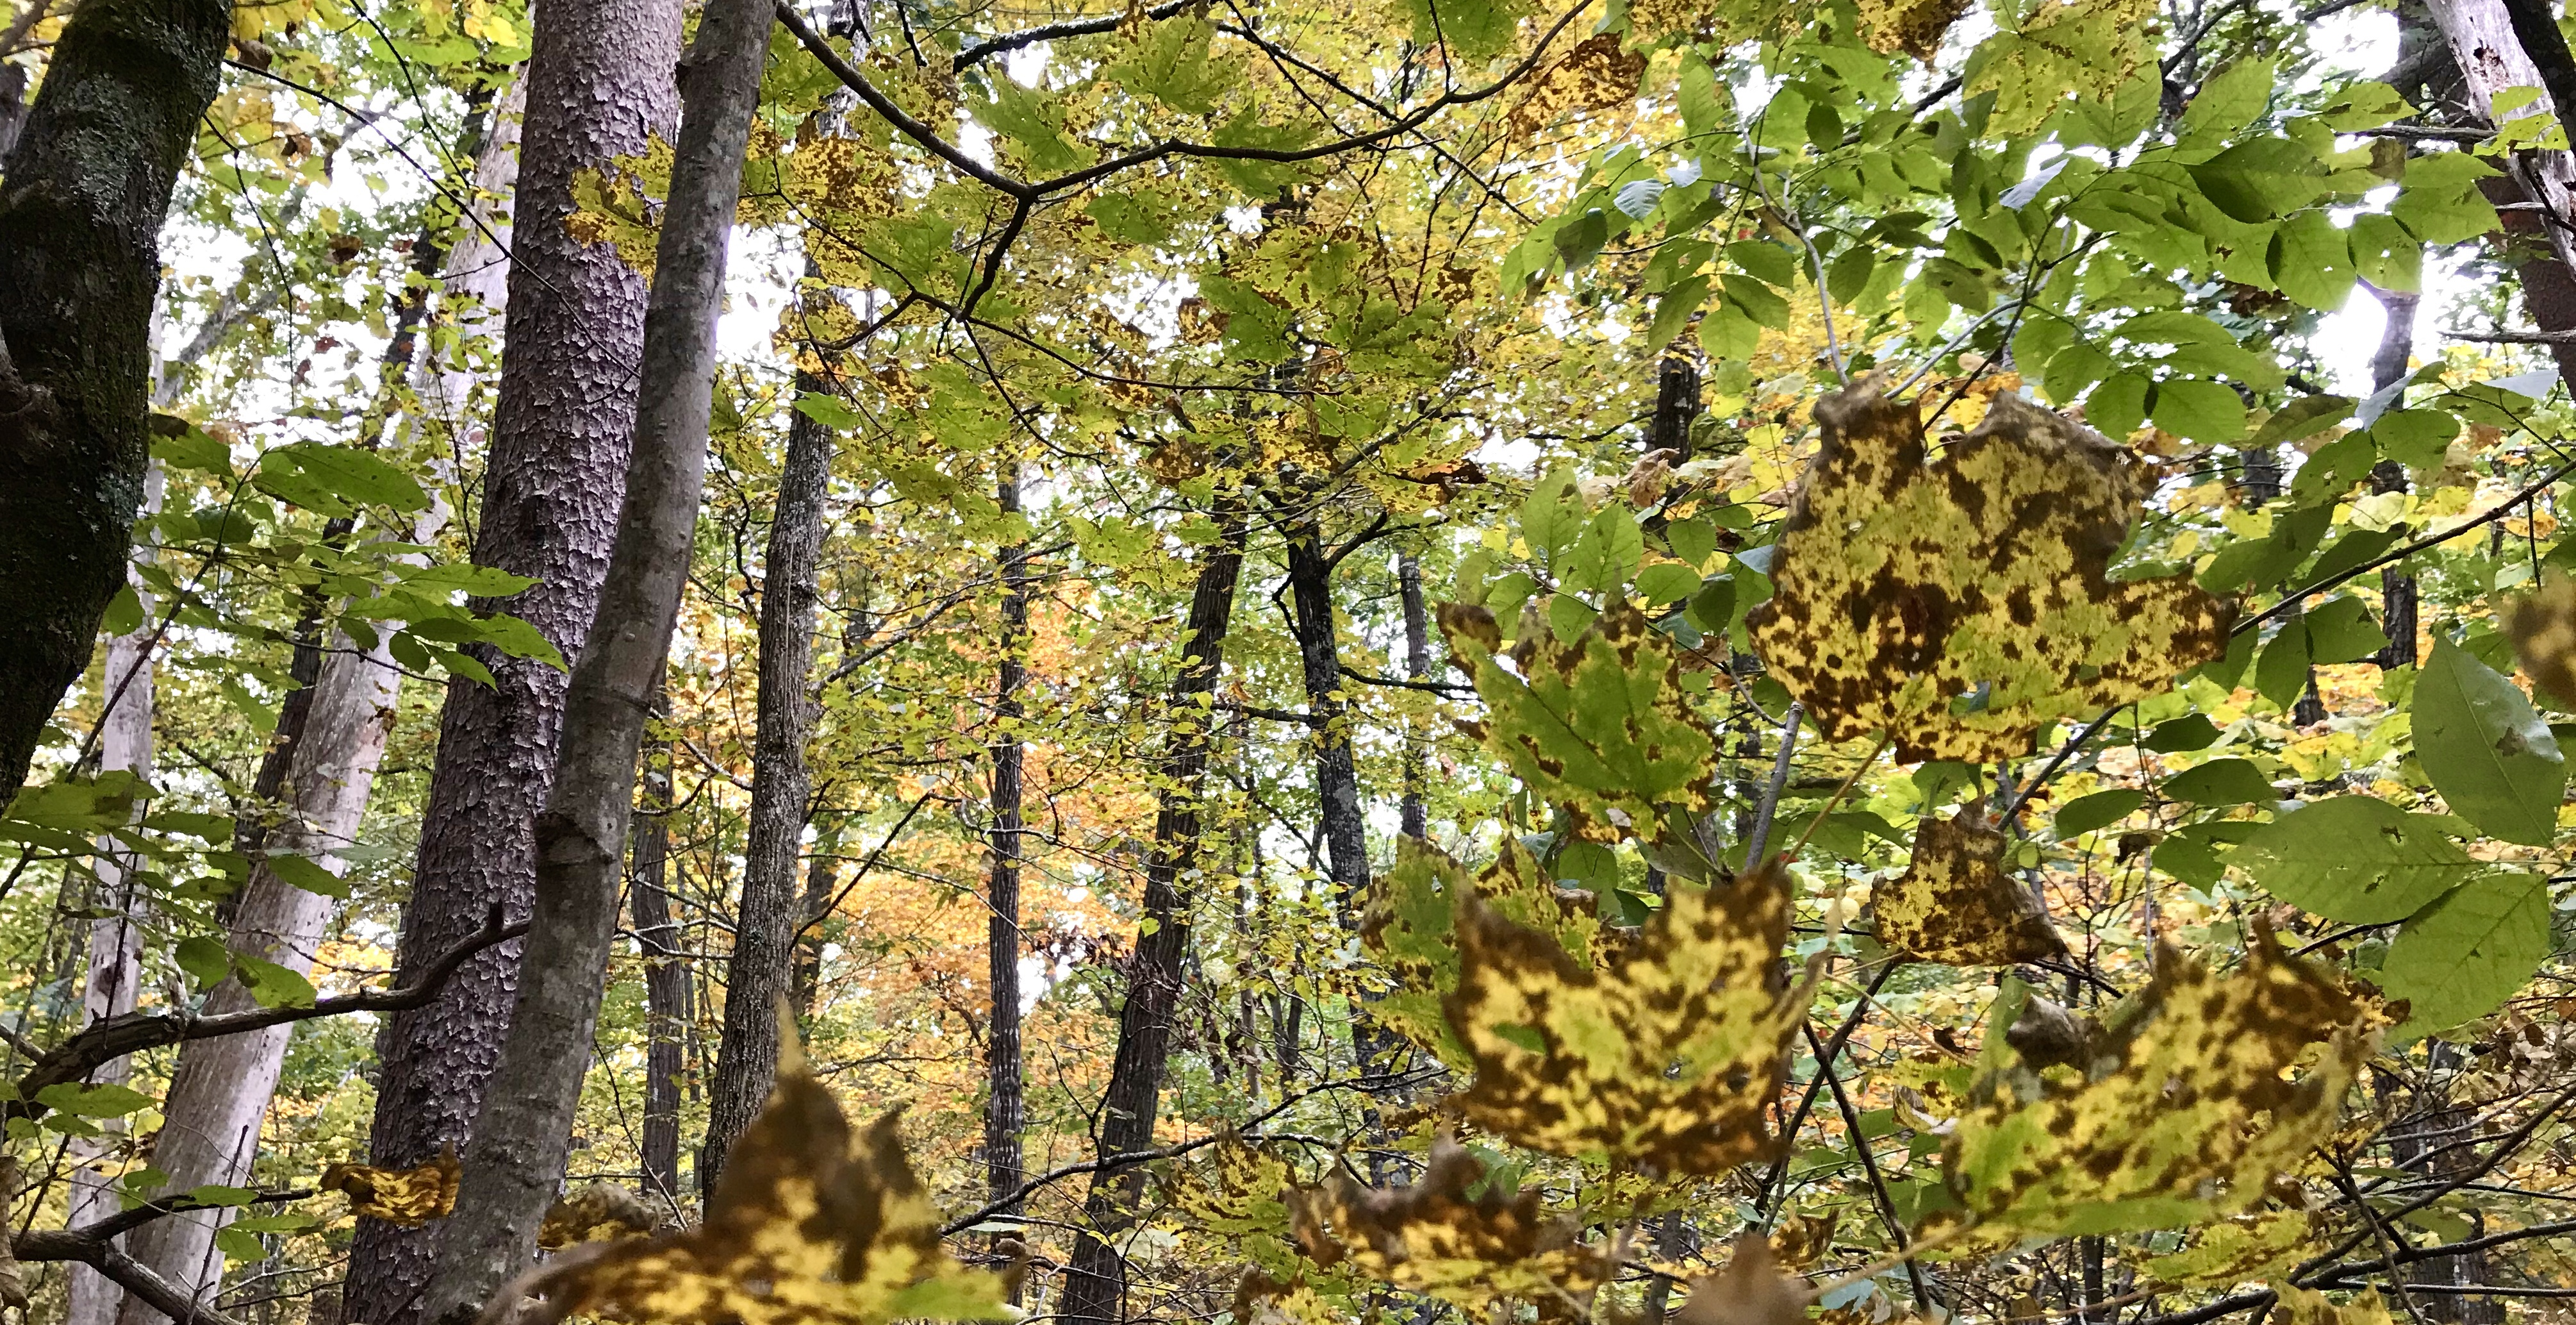 View of golden autumn leaves in a forest in Virginia's Shenandoah Valley photographed by MJ Seal